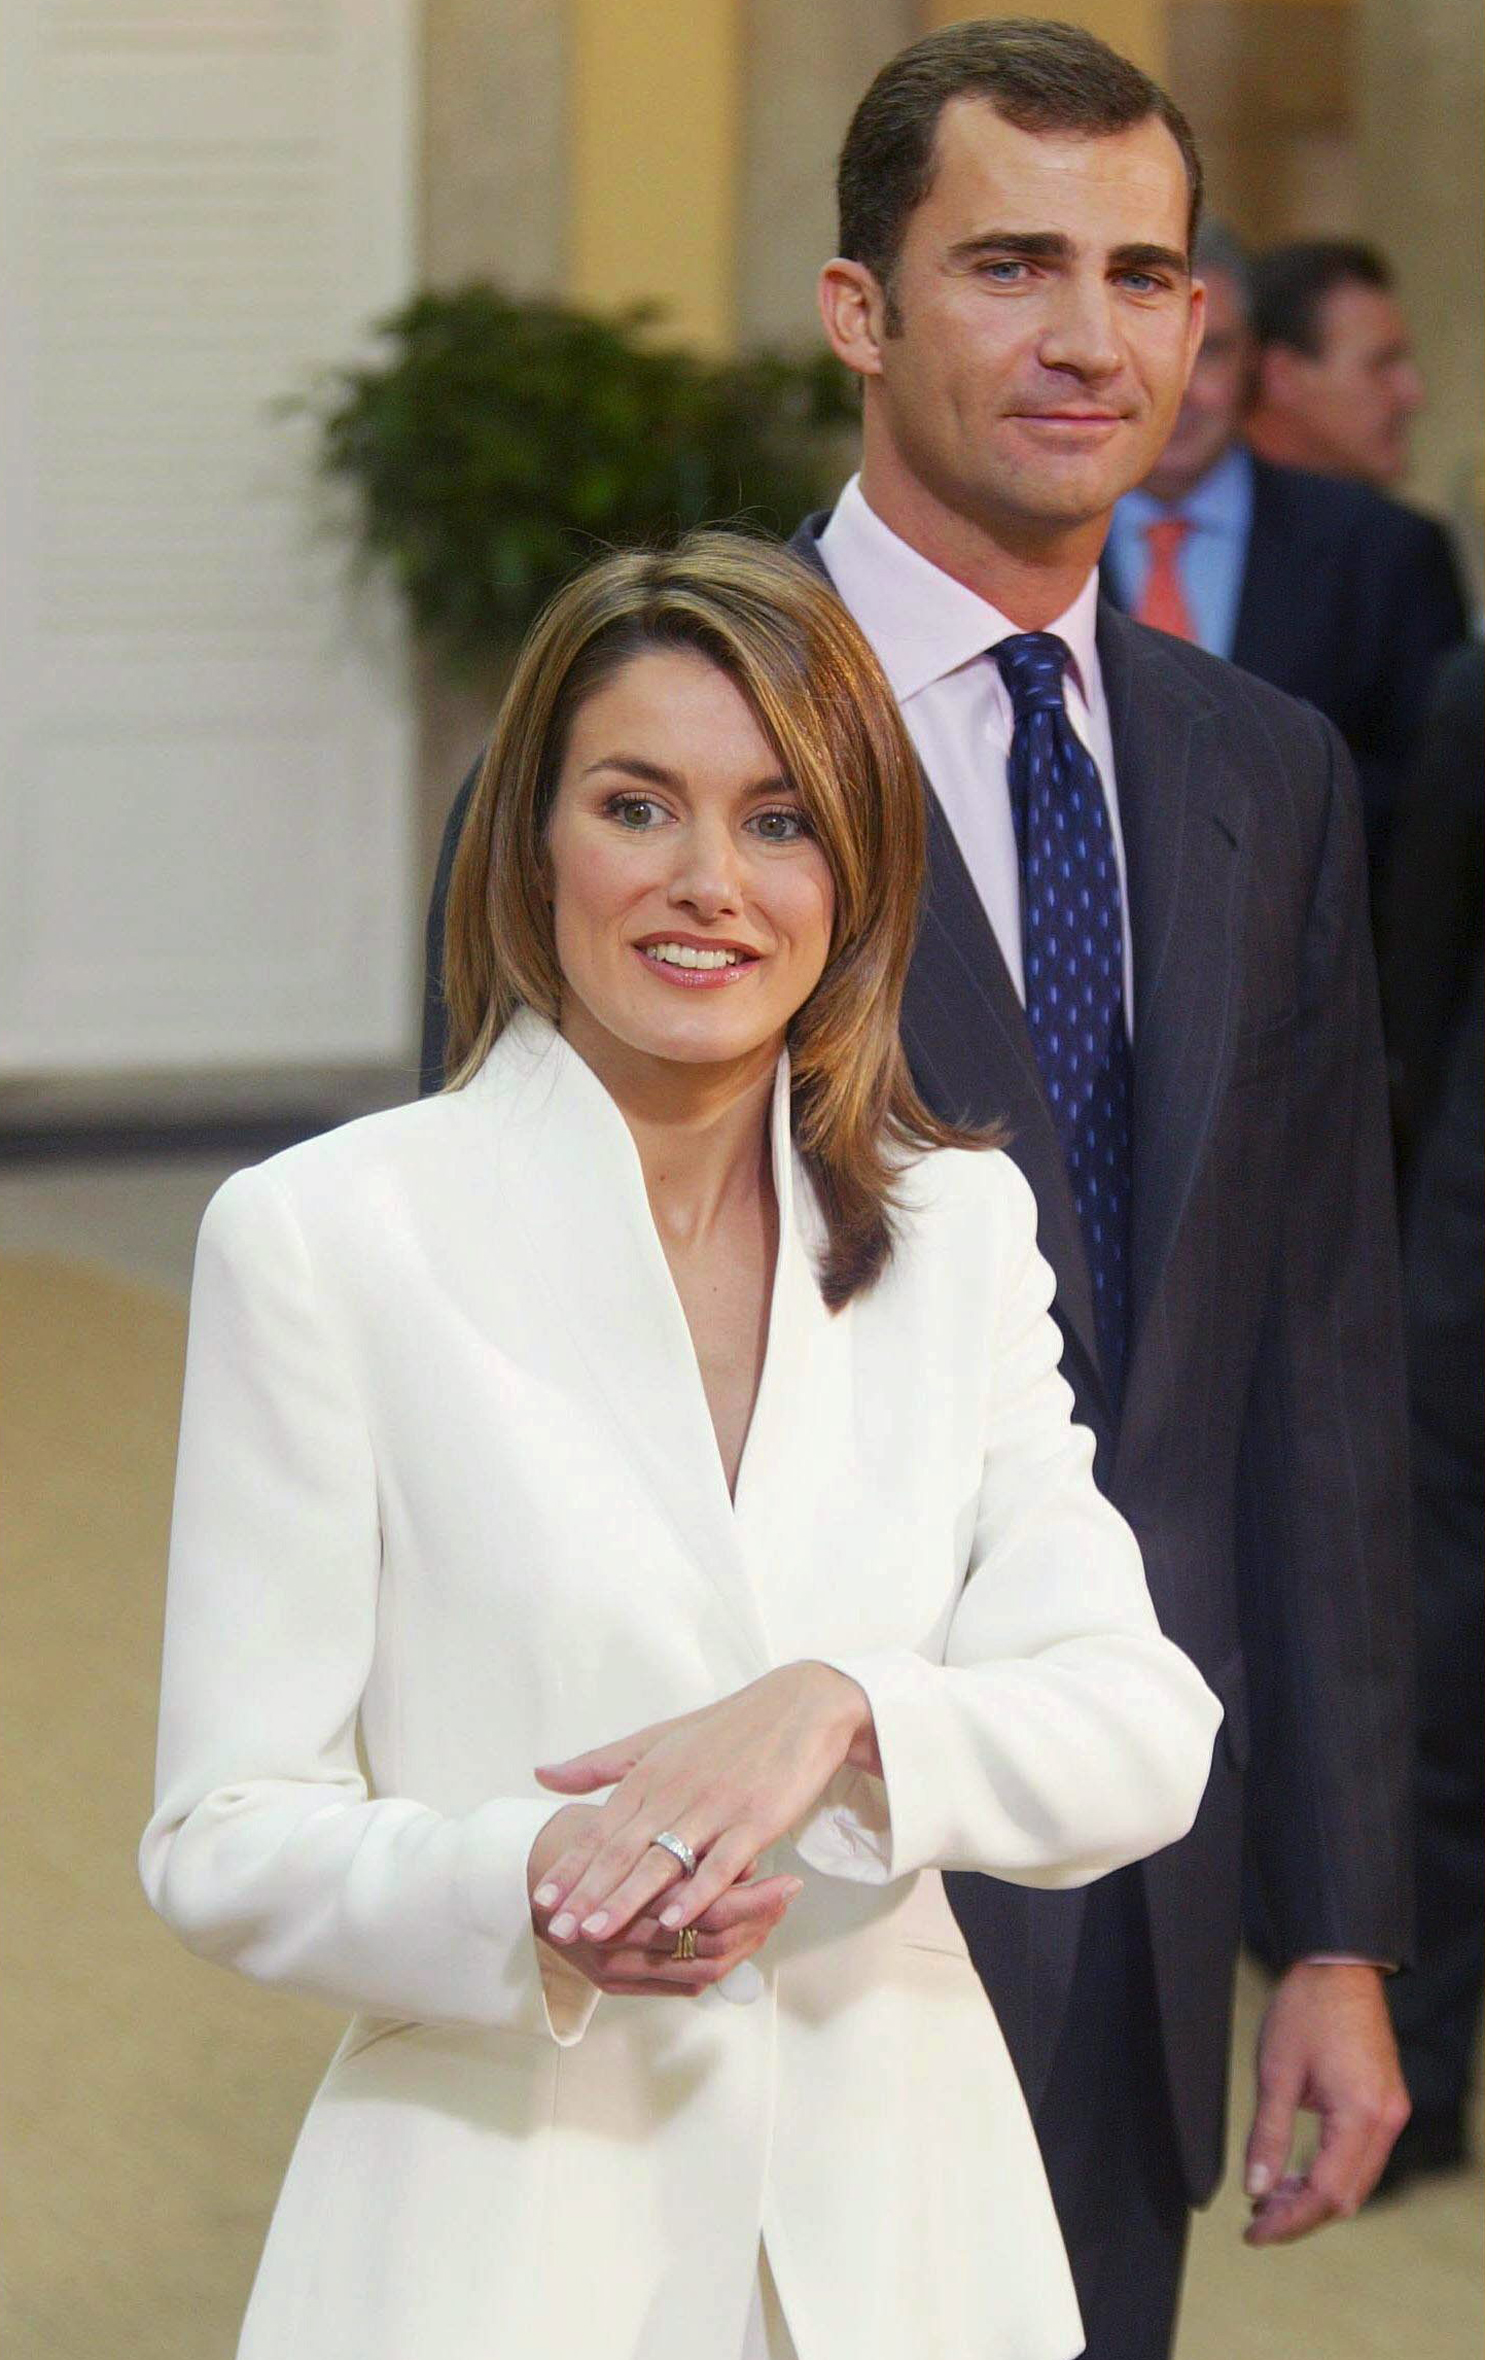 Prince Felipe of Bourbon and Letizia Ortiz at Pardo Palace after the official announcement of their engagement In Madrid on November 06, 2003.